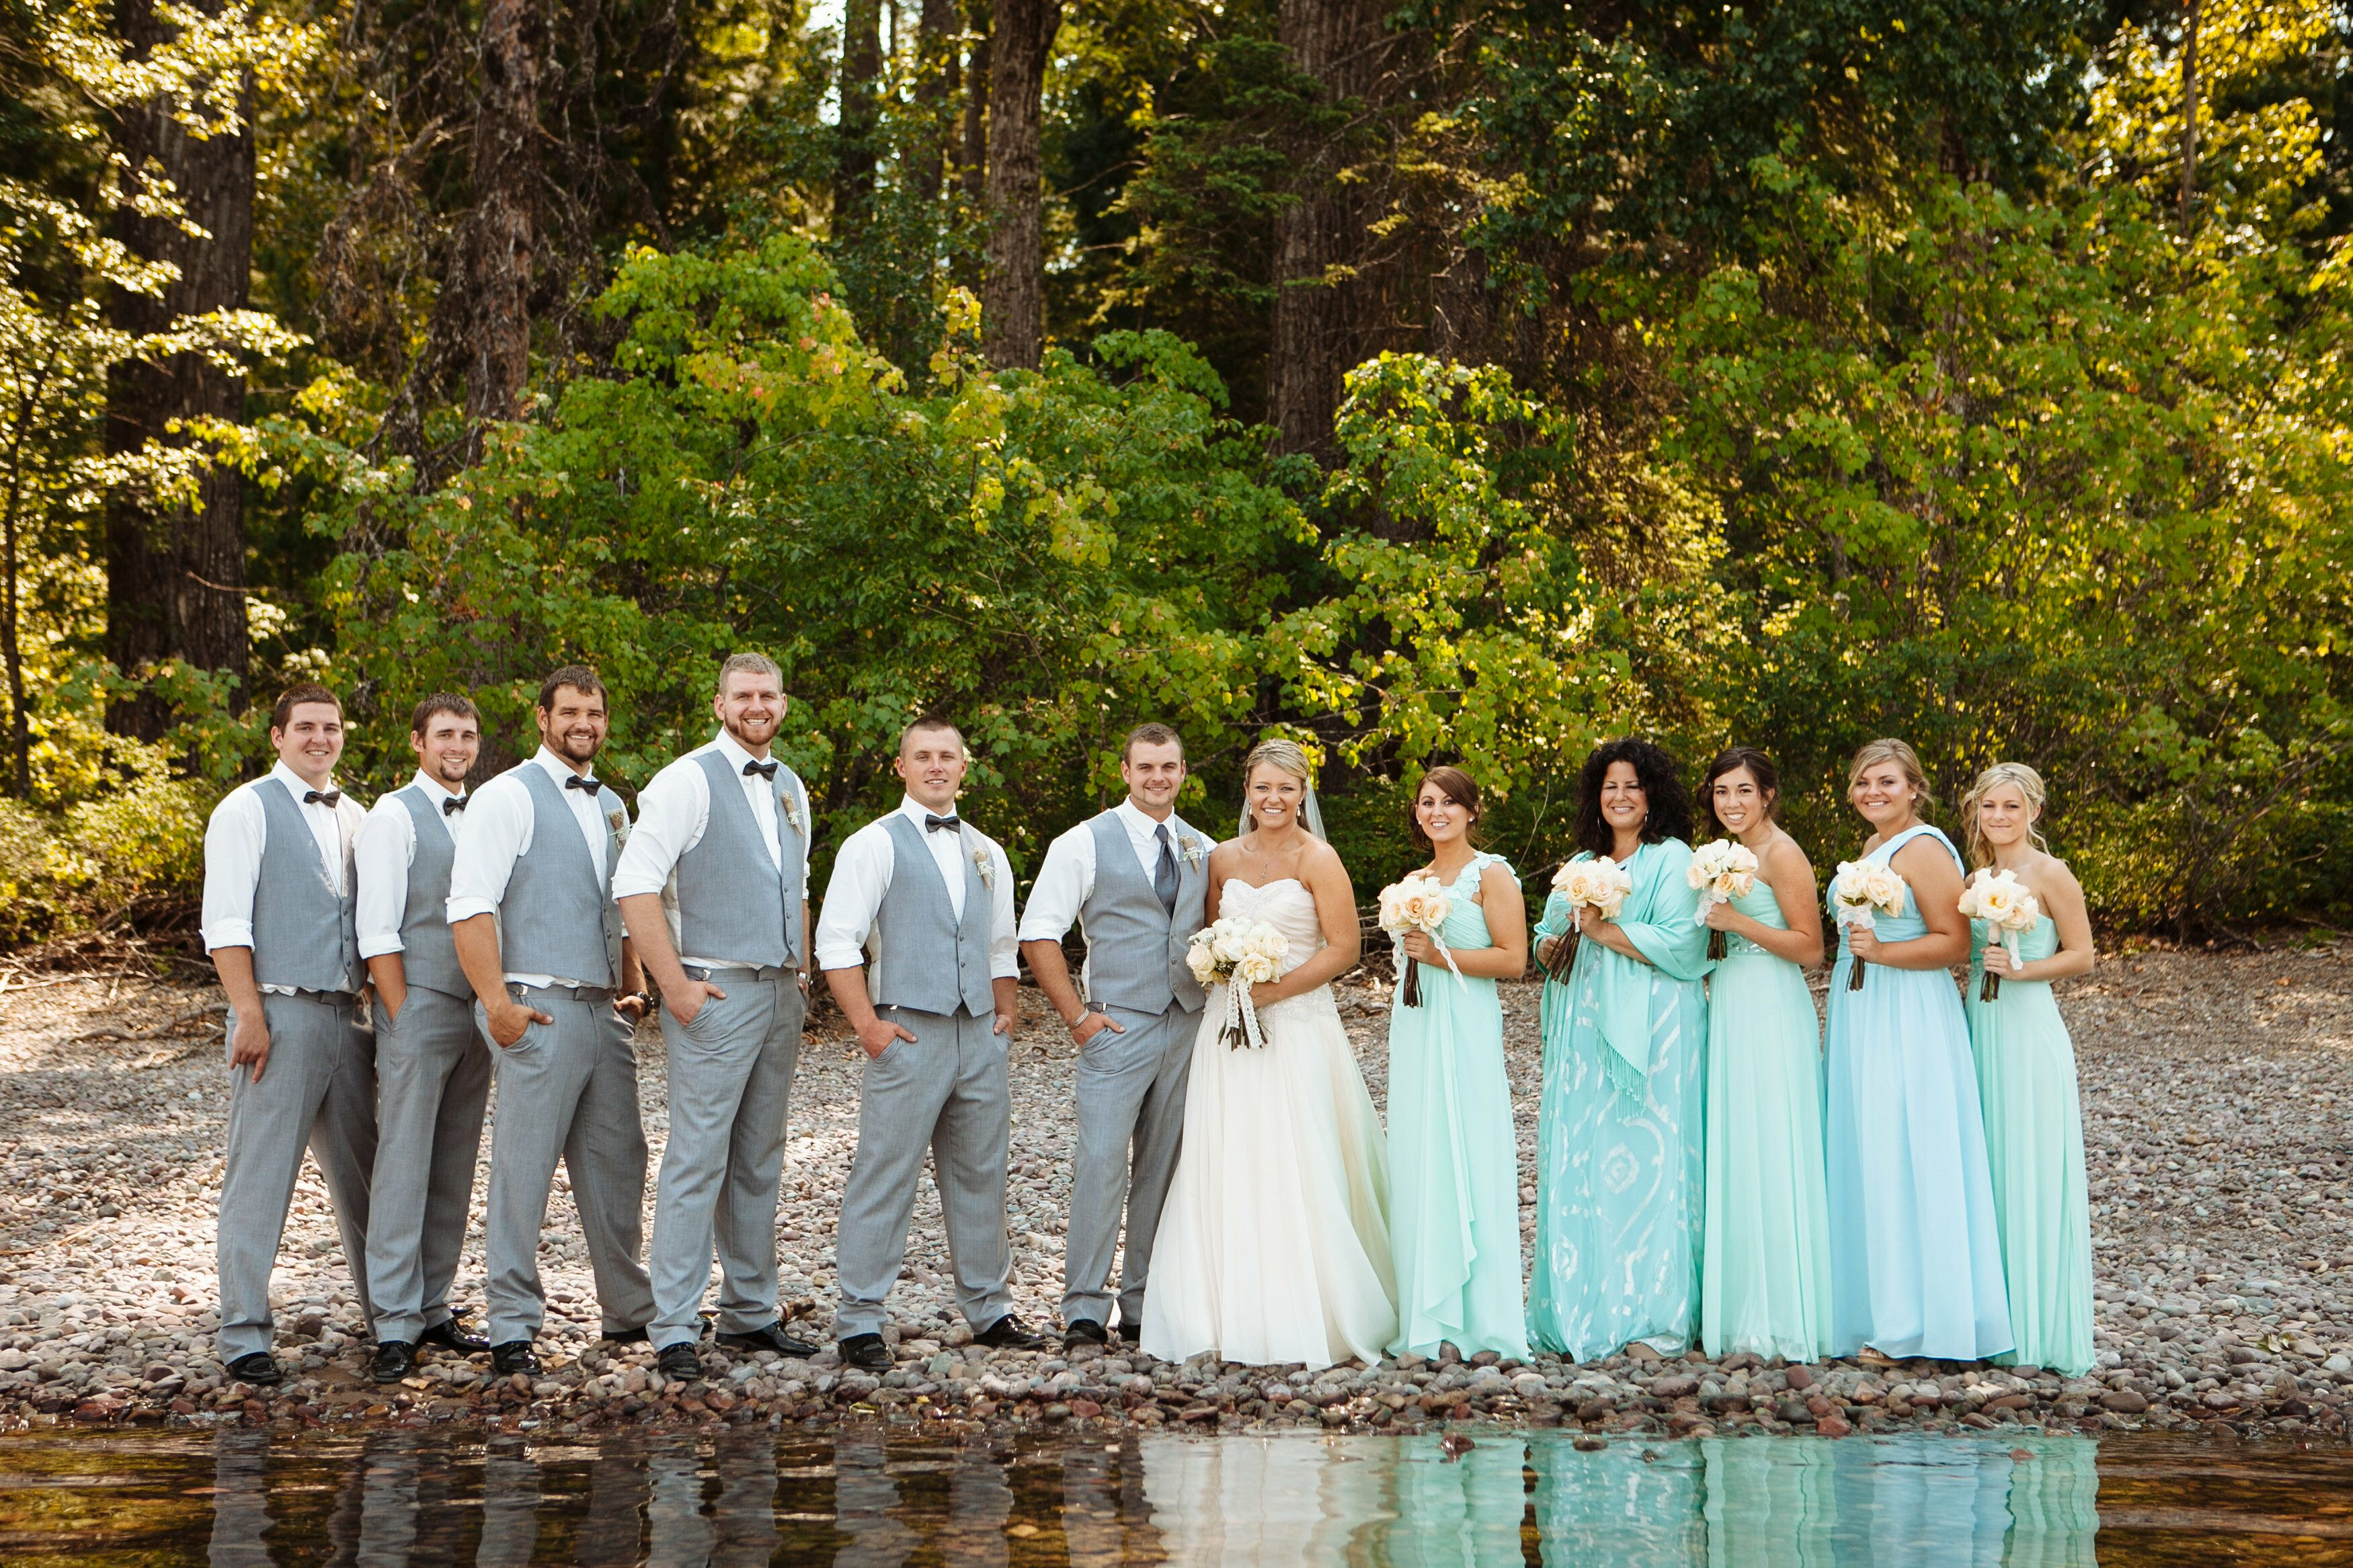 Turquoise Bridesmaid Dresses And Gray Groomsmen Suits